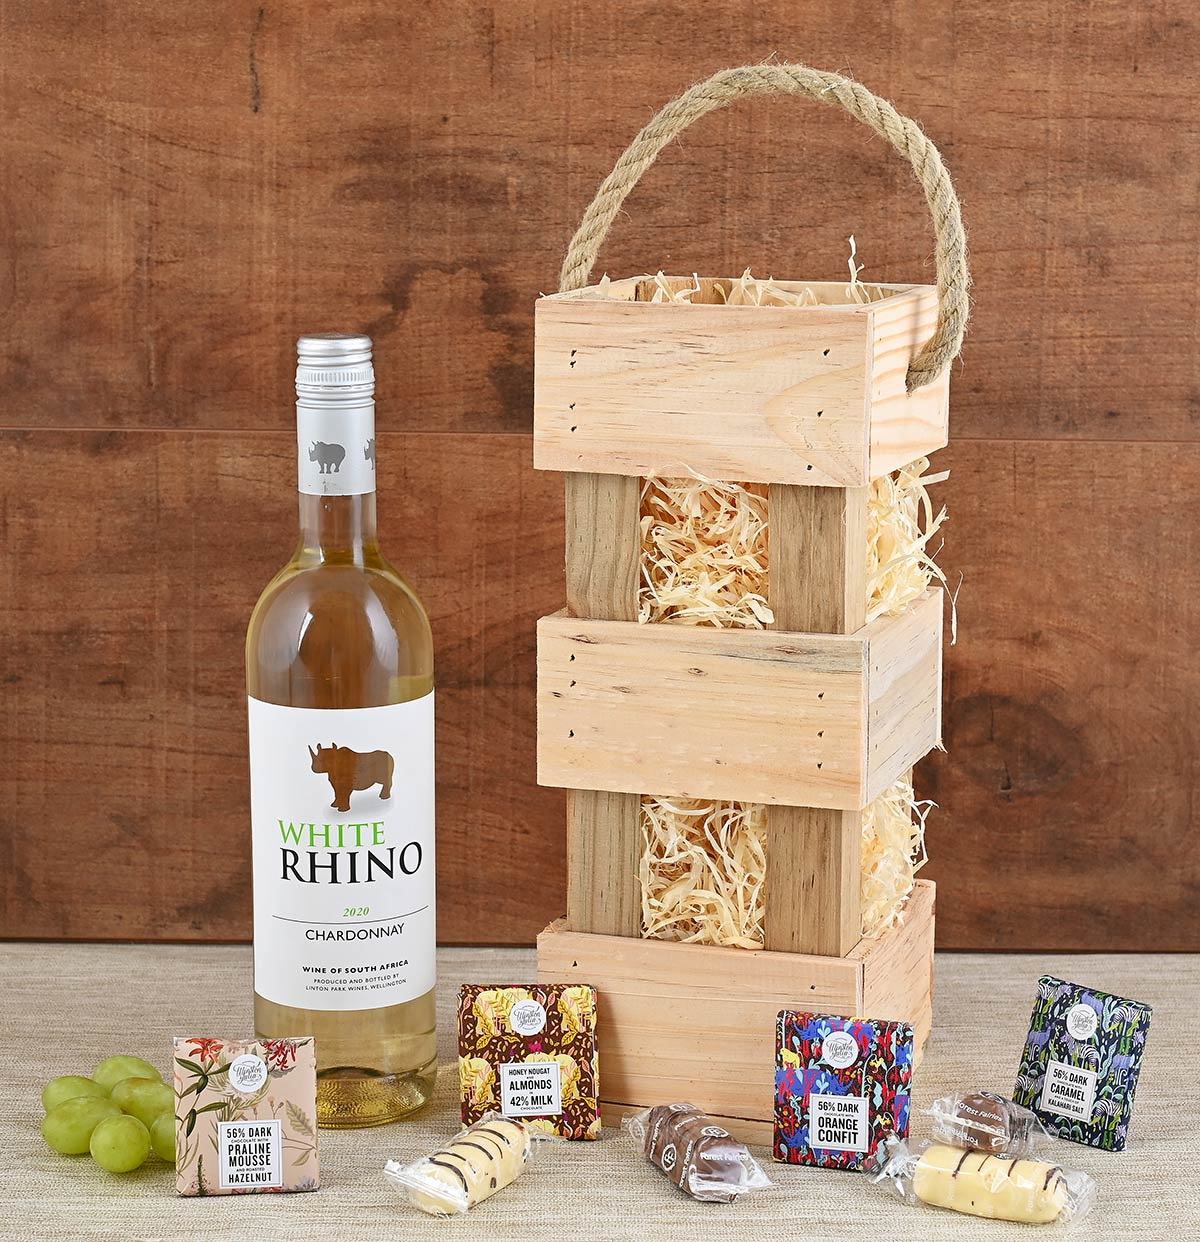 Rhino Wine in Carrier With Snacks | Hamper World